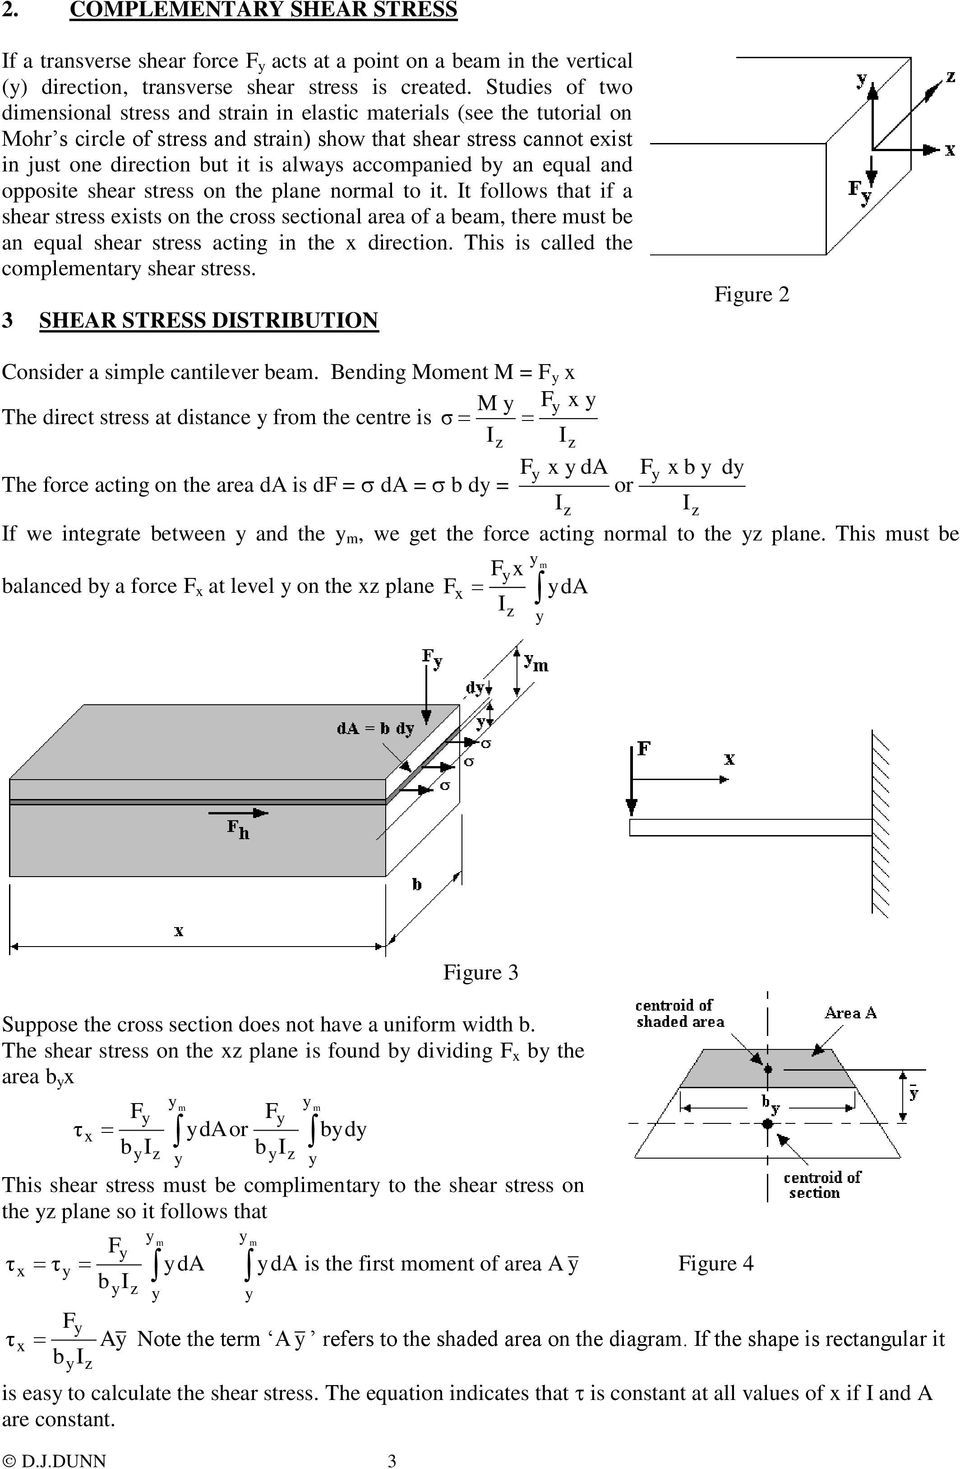 Mechanics Of Solids Beams Tutorial 4 Complementary Cantilever Beam Moment Diagram Picture Accompanied B An Equal And Opposite Shear Stress On The Plane Normal To It